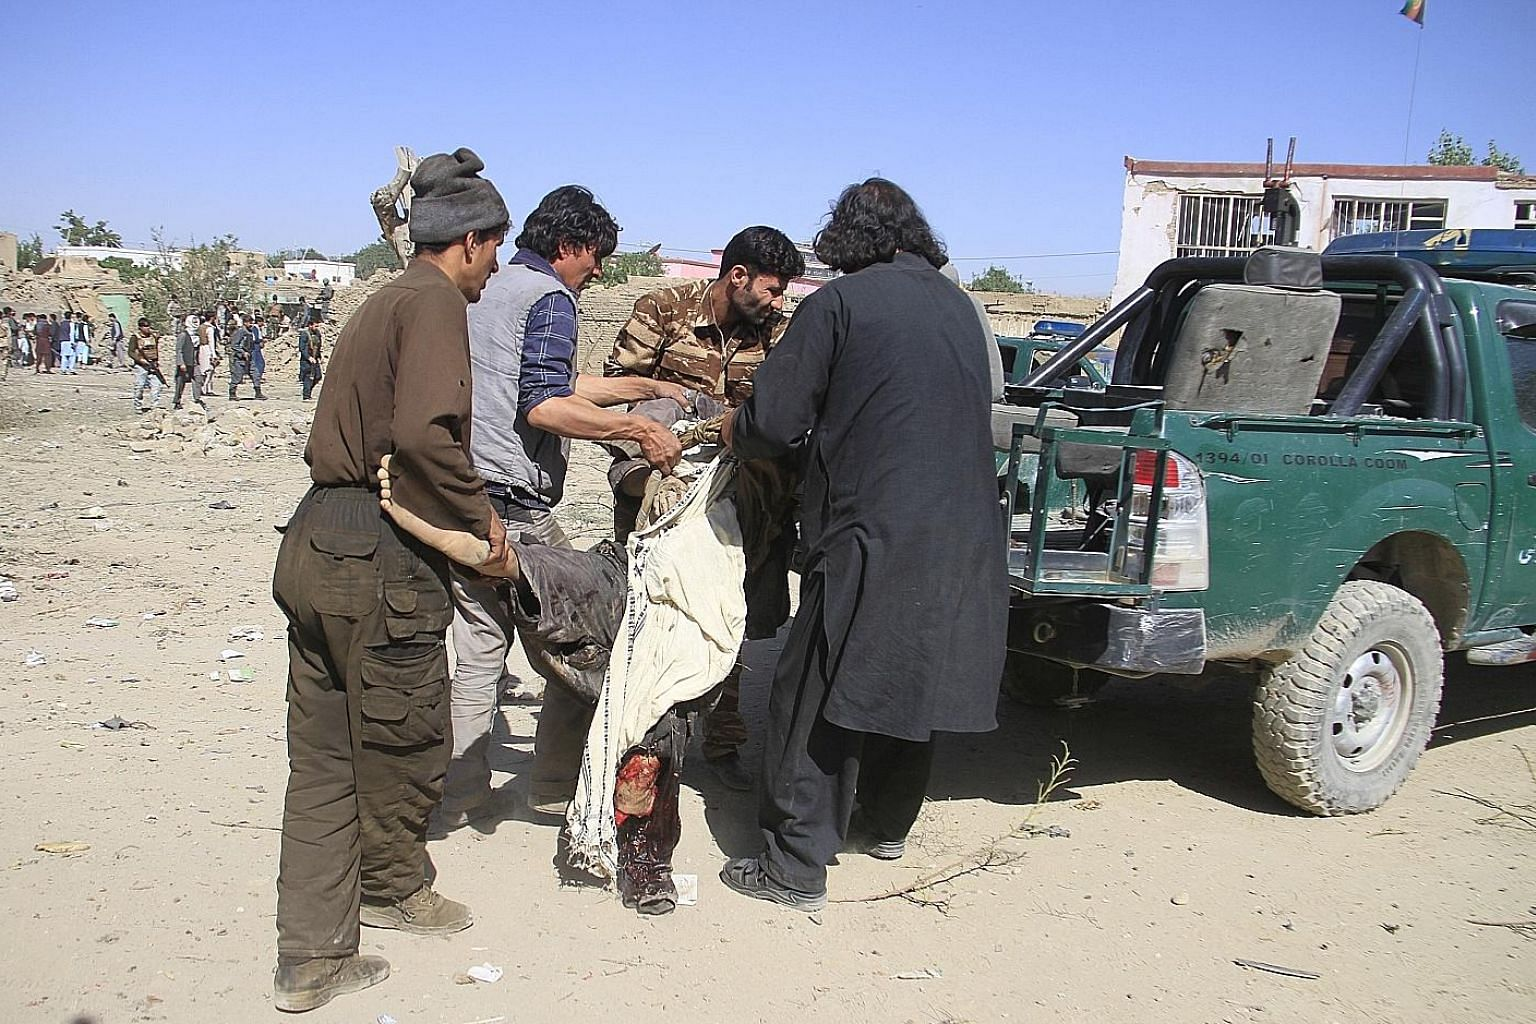 Afghans moving an injured man from the scene after Taleban fighters detonated a car bomb in Ghazni. The Taleban have continued attacks despite increased US efforts towards a peace deal to end the 18-year war.